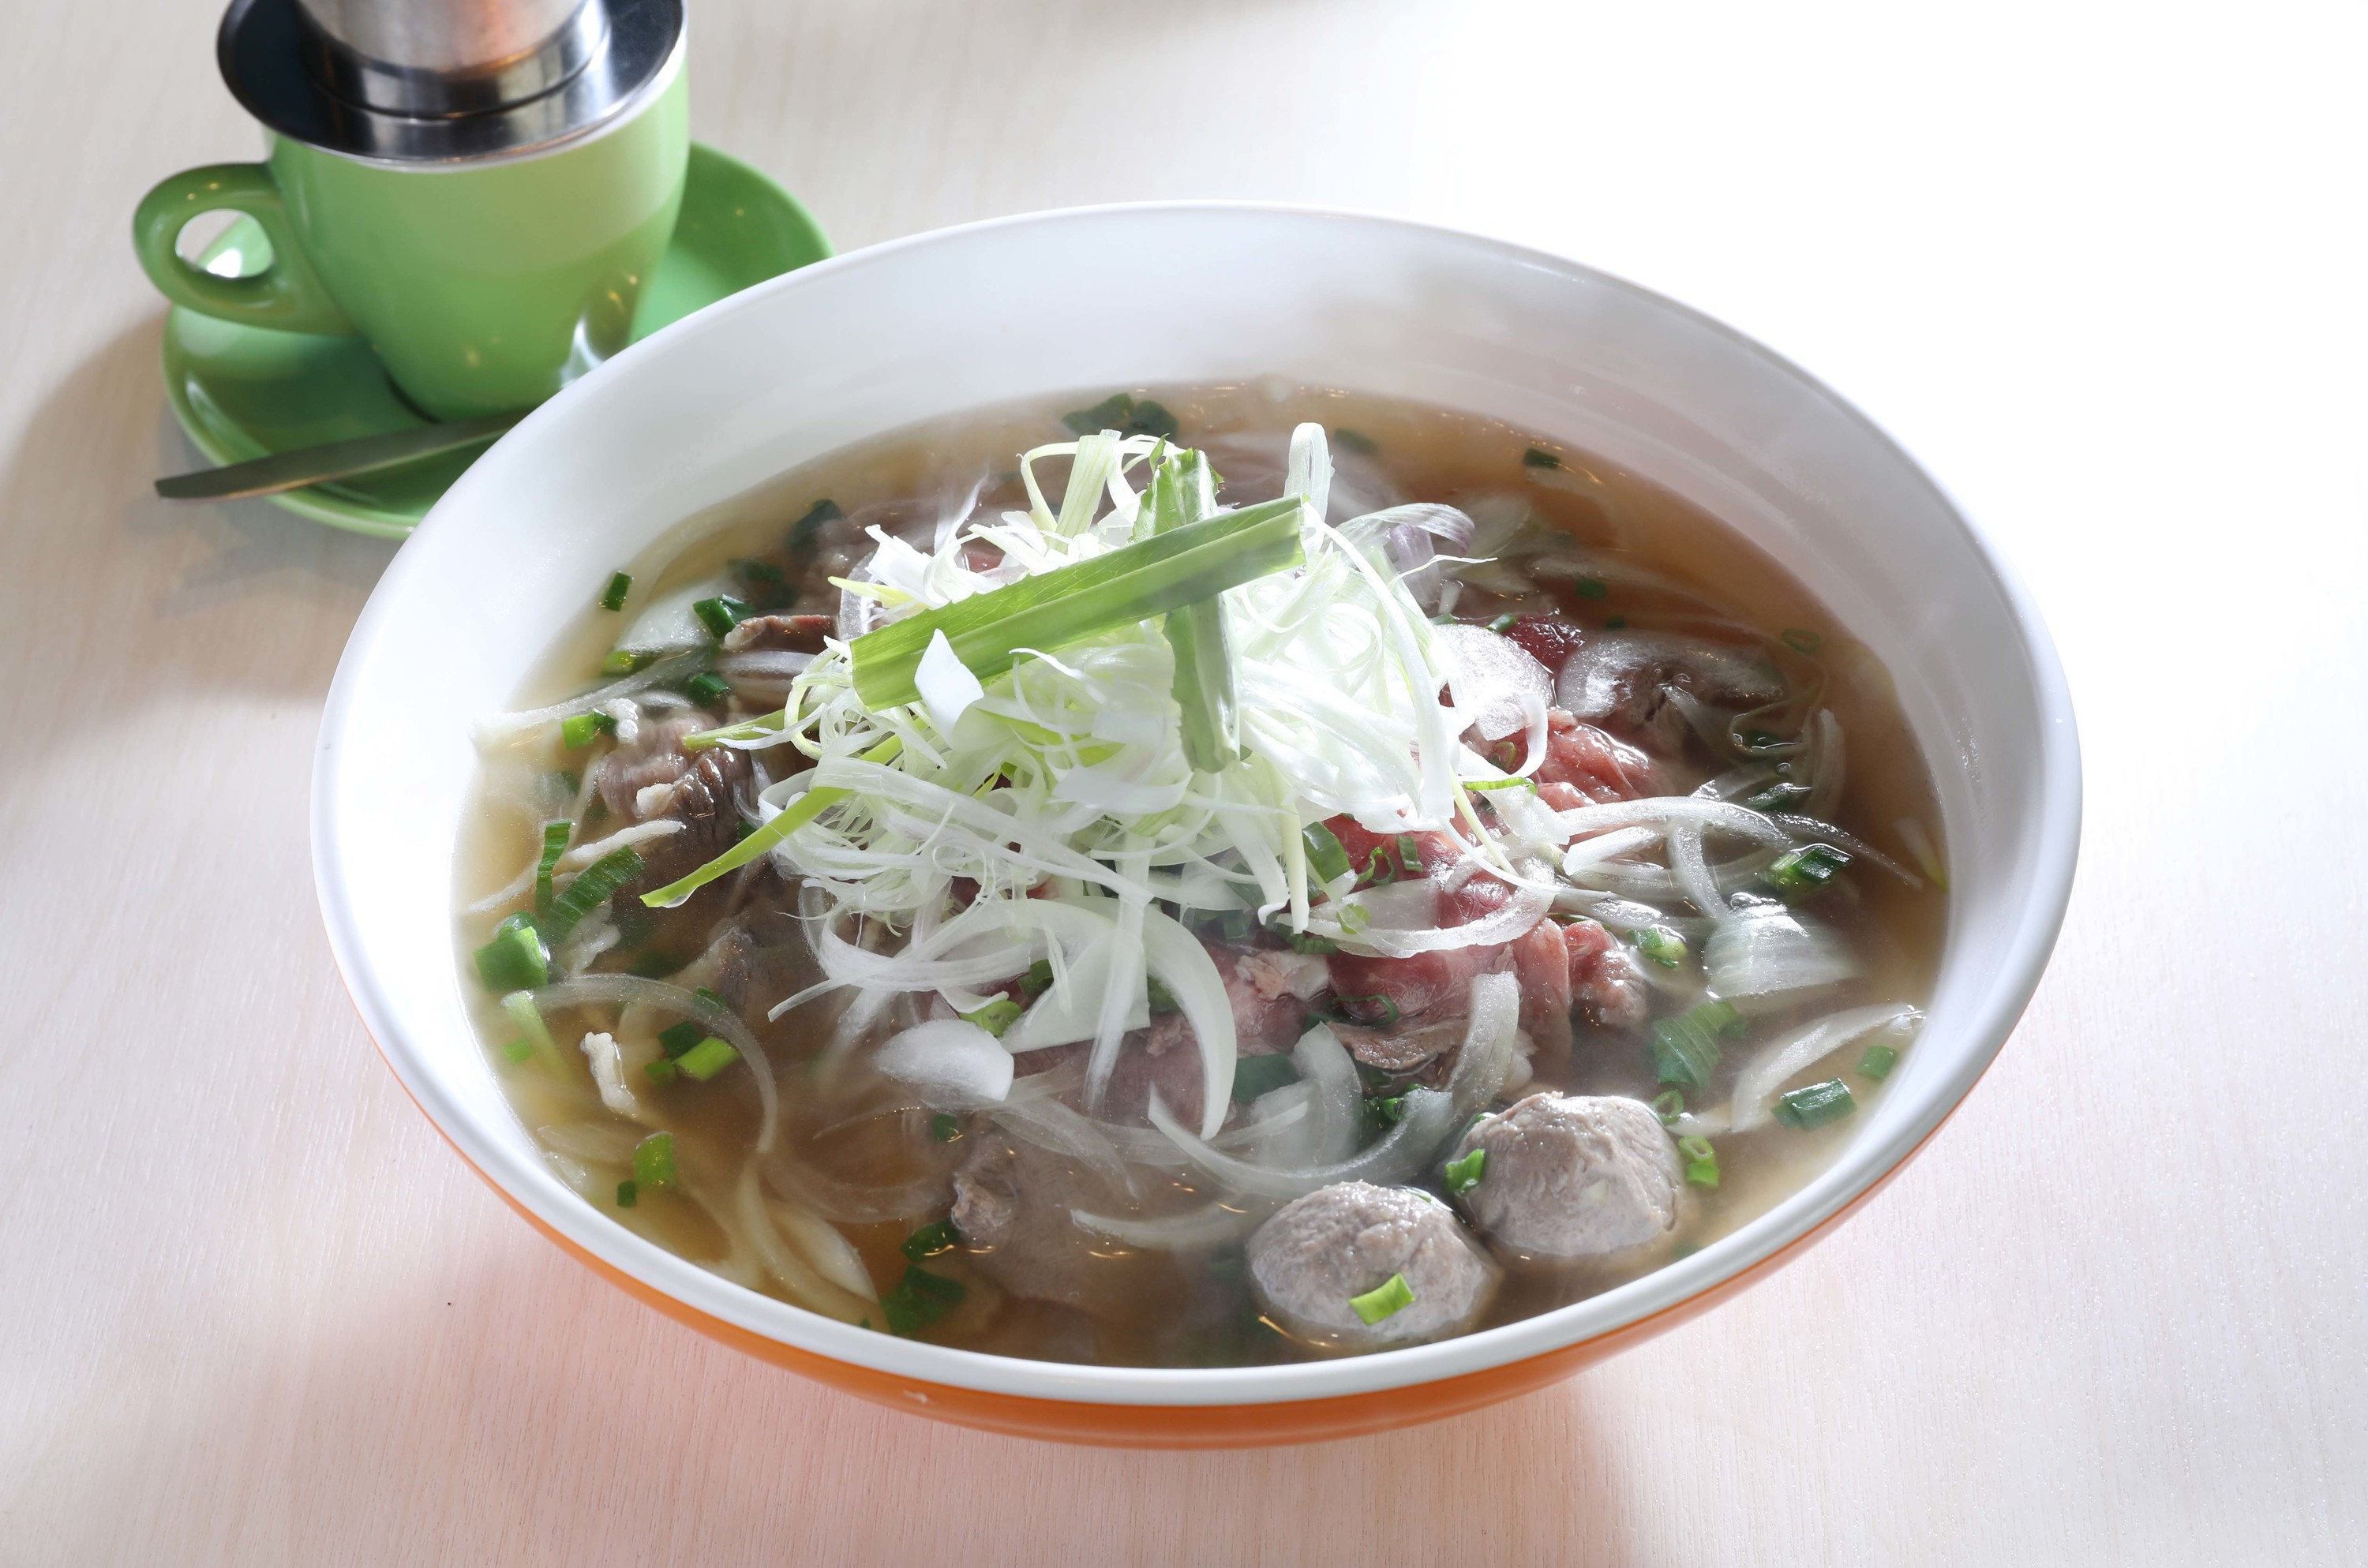 The Pho